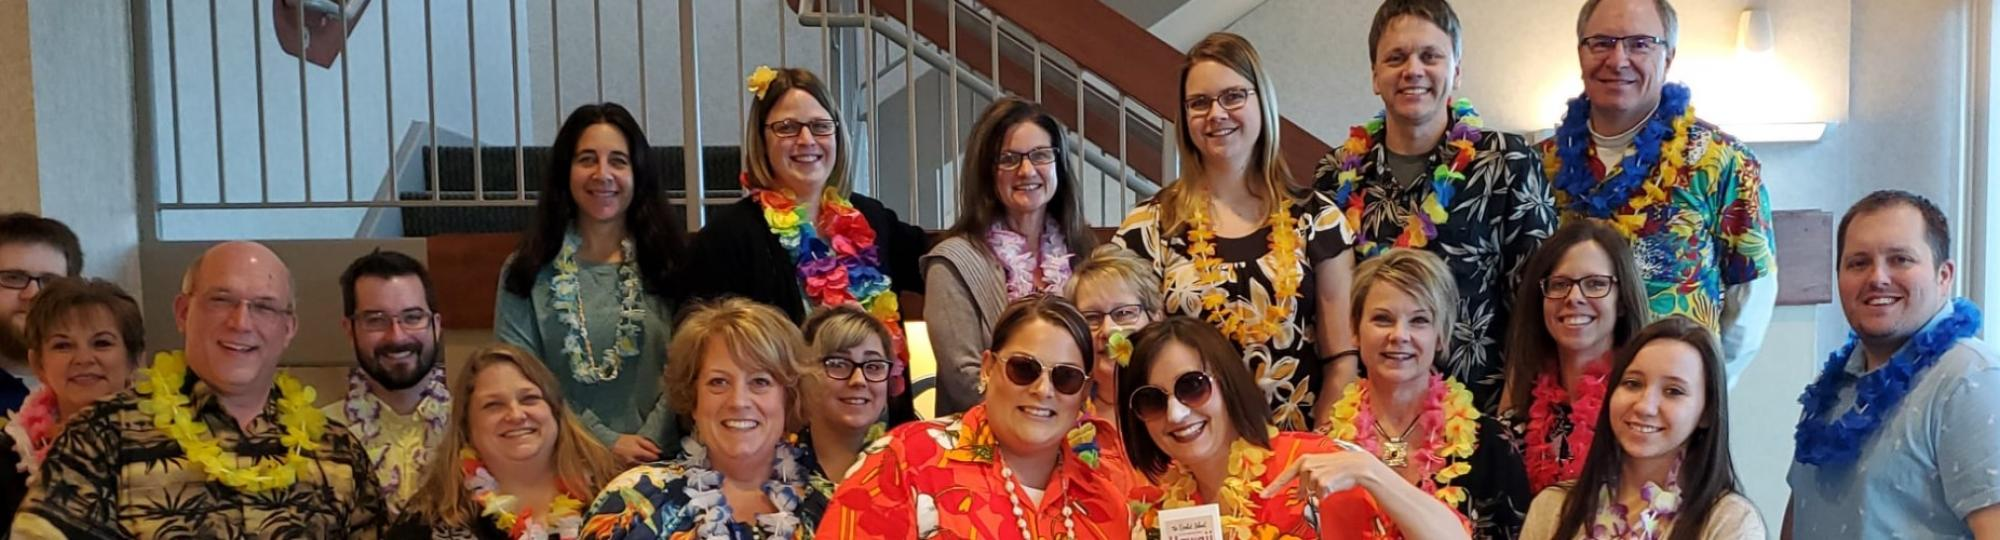 Community Resource Bank staff celebrate Hawaiin day of their United Way campaign - wearing tropical shirts and colorful leis